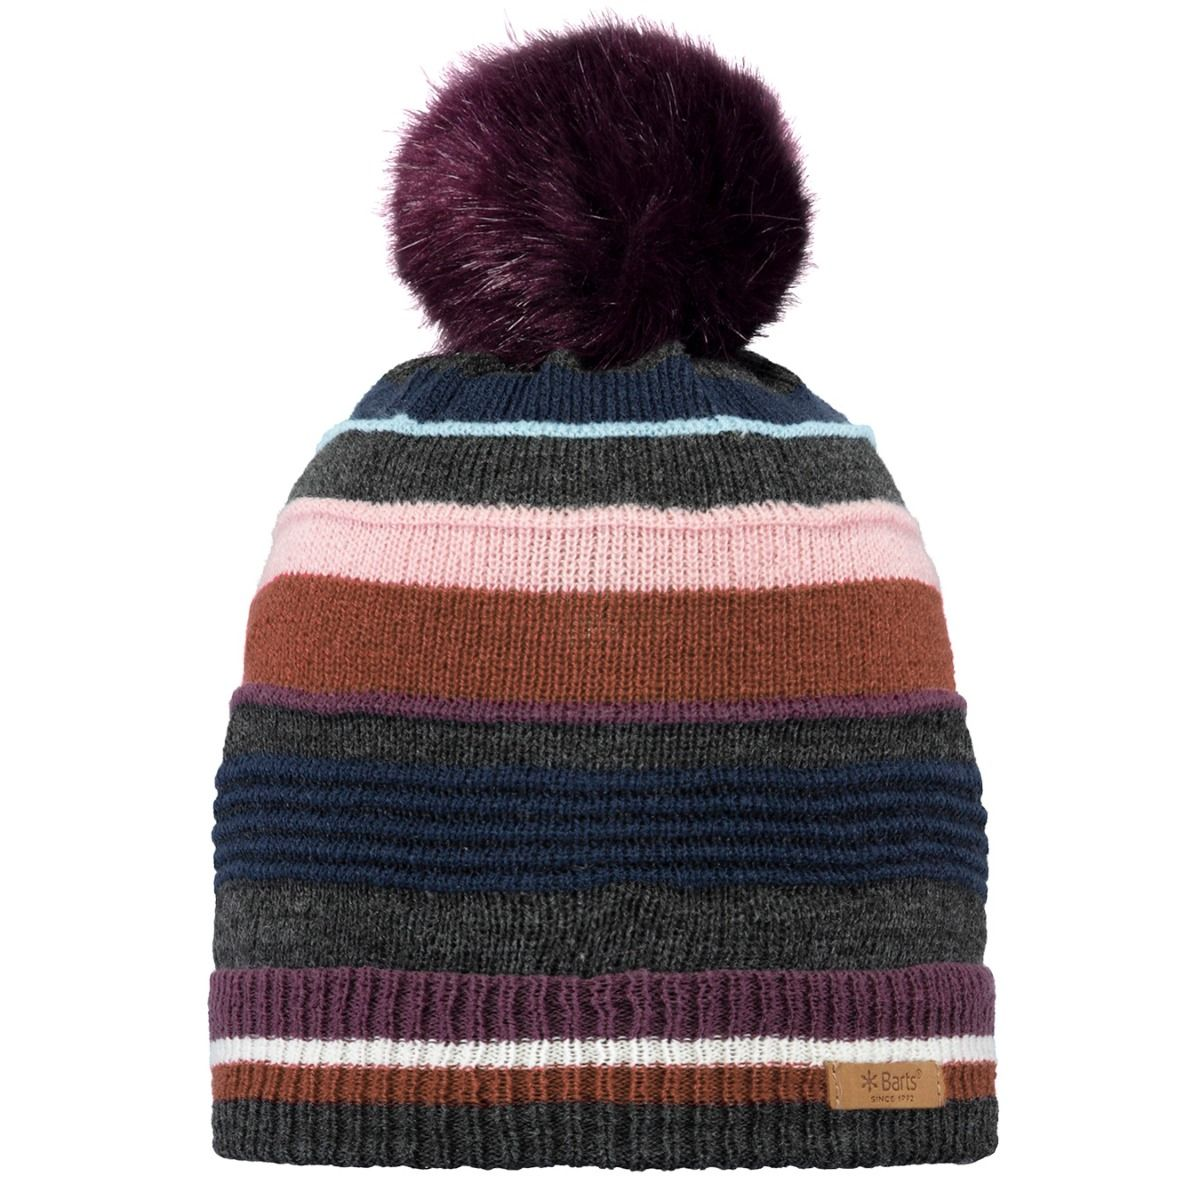 d3a72edc Barts Mabel Beanie - Dark Heather in 2019 | Products | Beanie ...